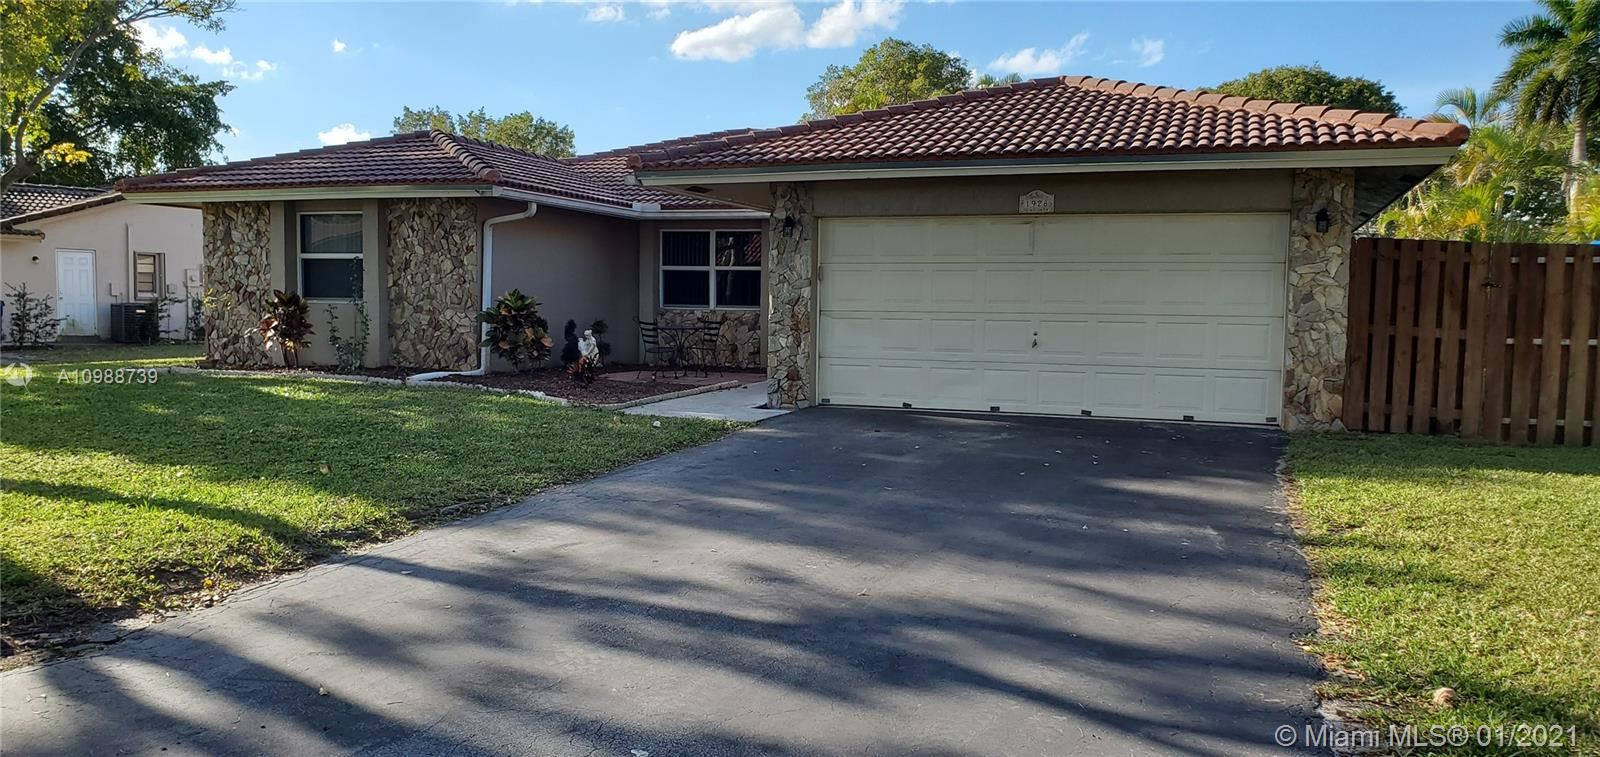 1928 NW 108th Ln, Coral Springs, FL 33071 - #: A10988739